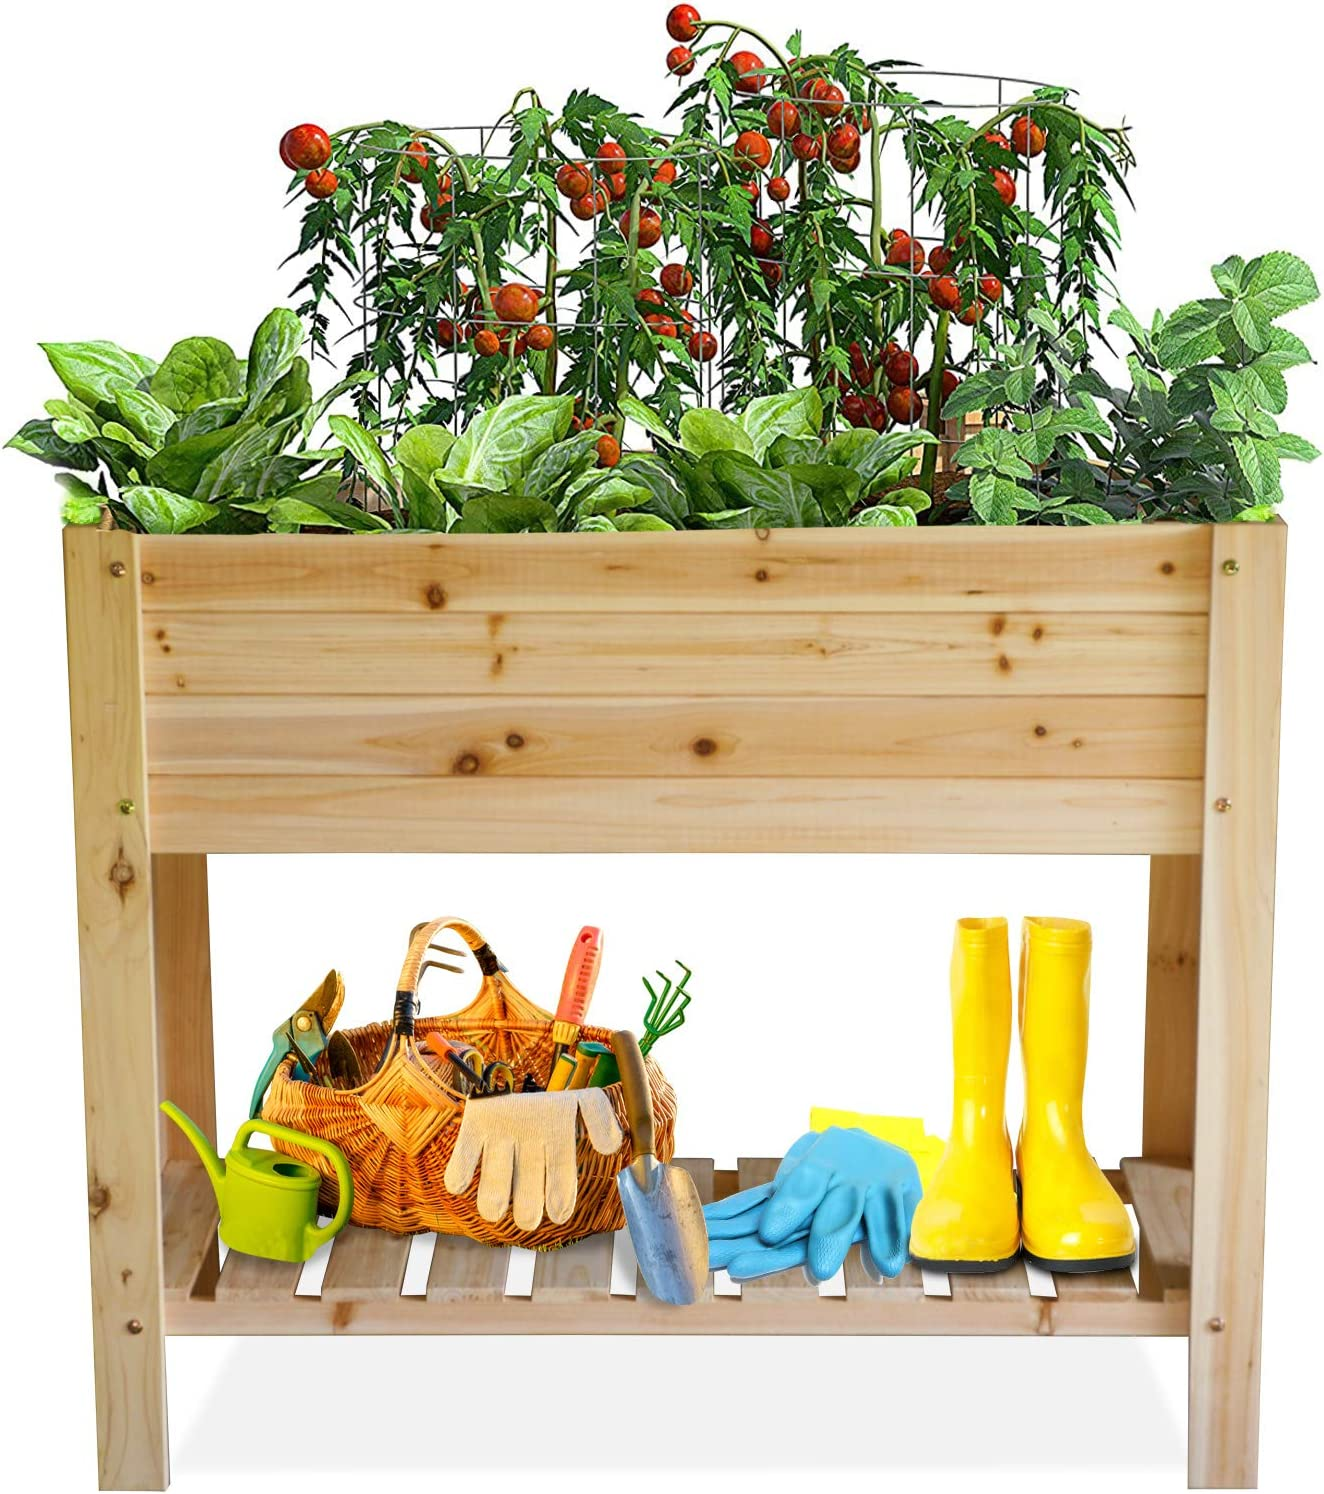 Raised Garden Bed Elevated Wood Planter Box Outdoor Wooden Planters Raised Beds with Legs for Vegetable Flower Herb, Above Ground Gardening Box with Protective Liner for Backyard Patio, Deck, Balcony